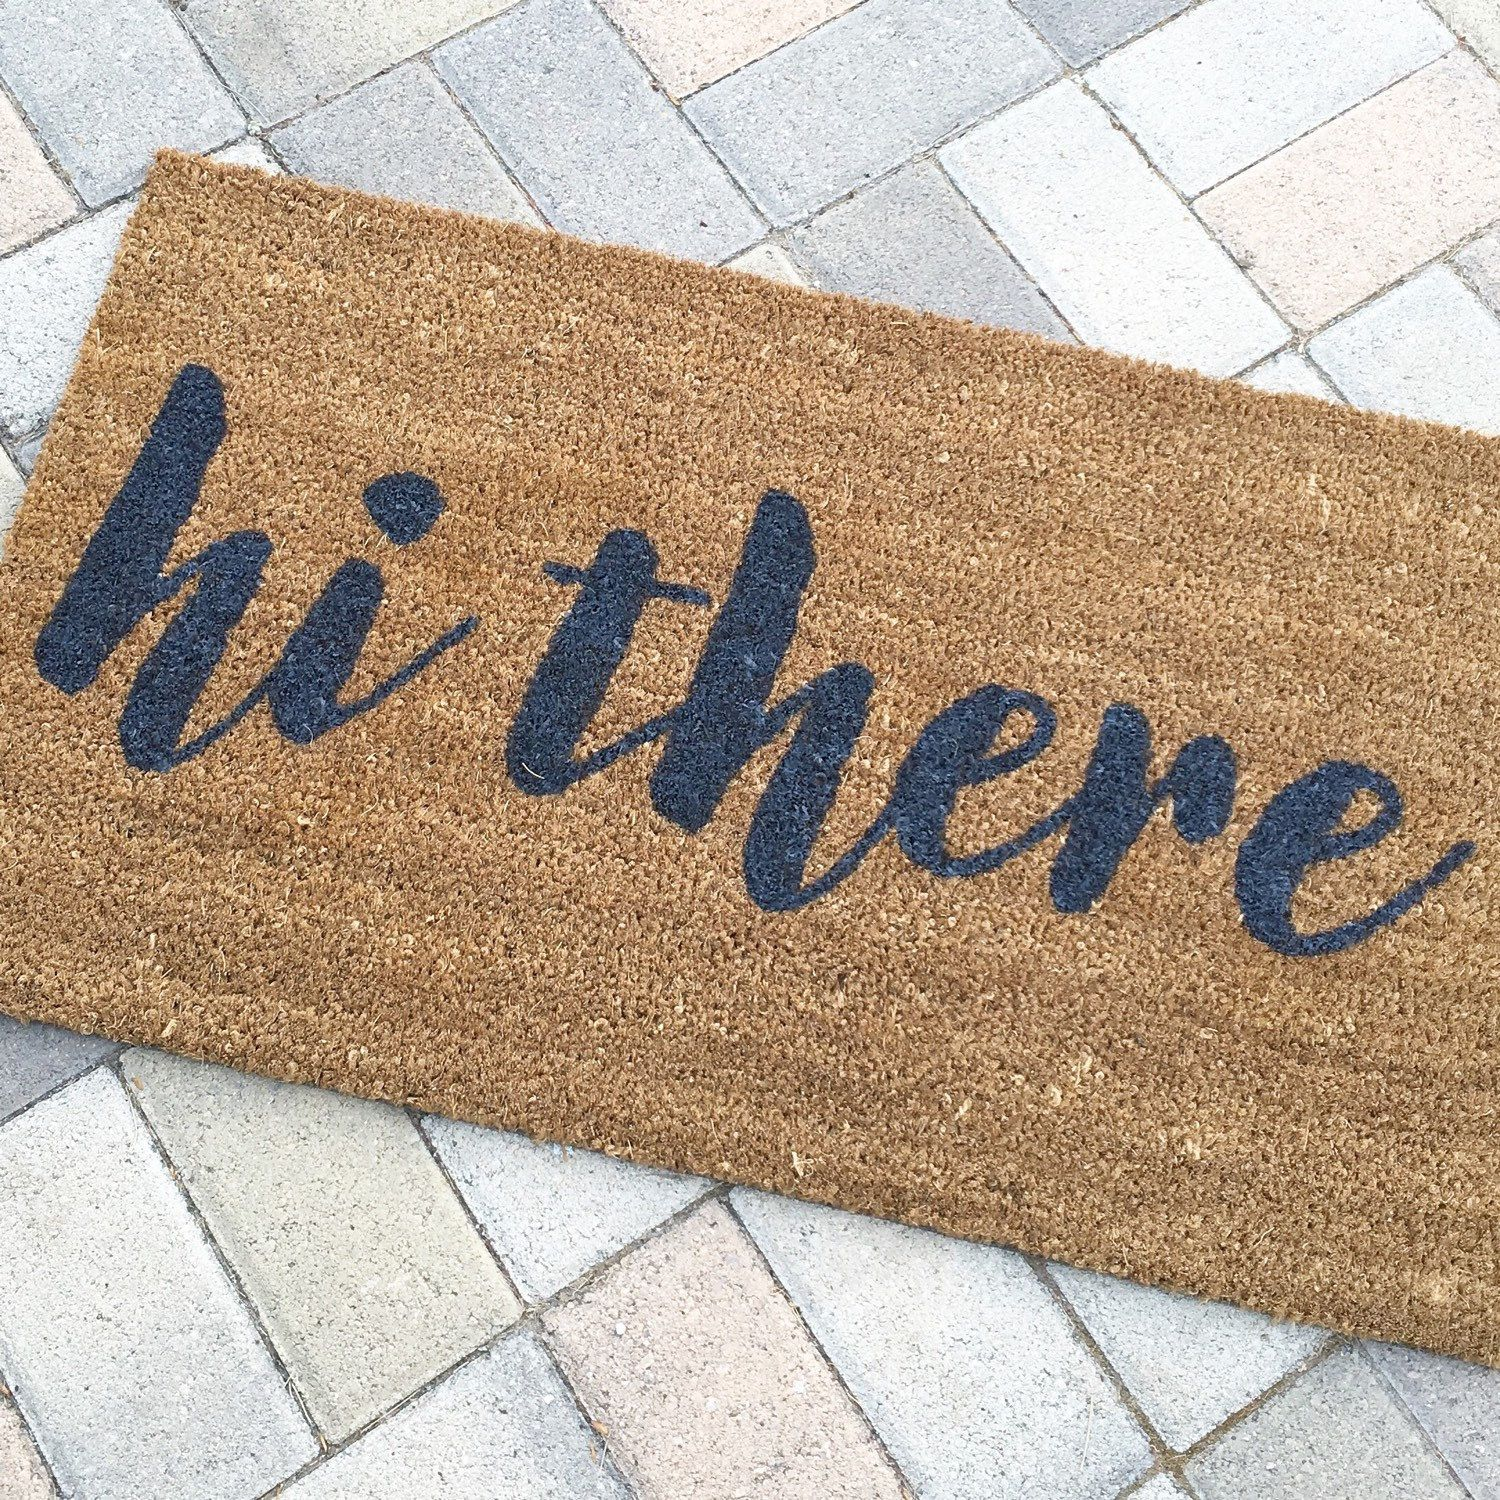 mats personalised post door doormat welcome for a doormatpersonalized the custom personalized mat front luxury